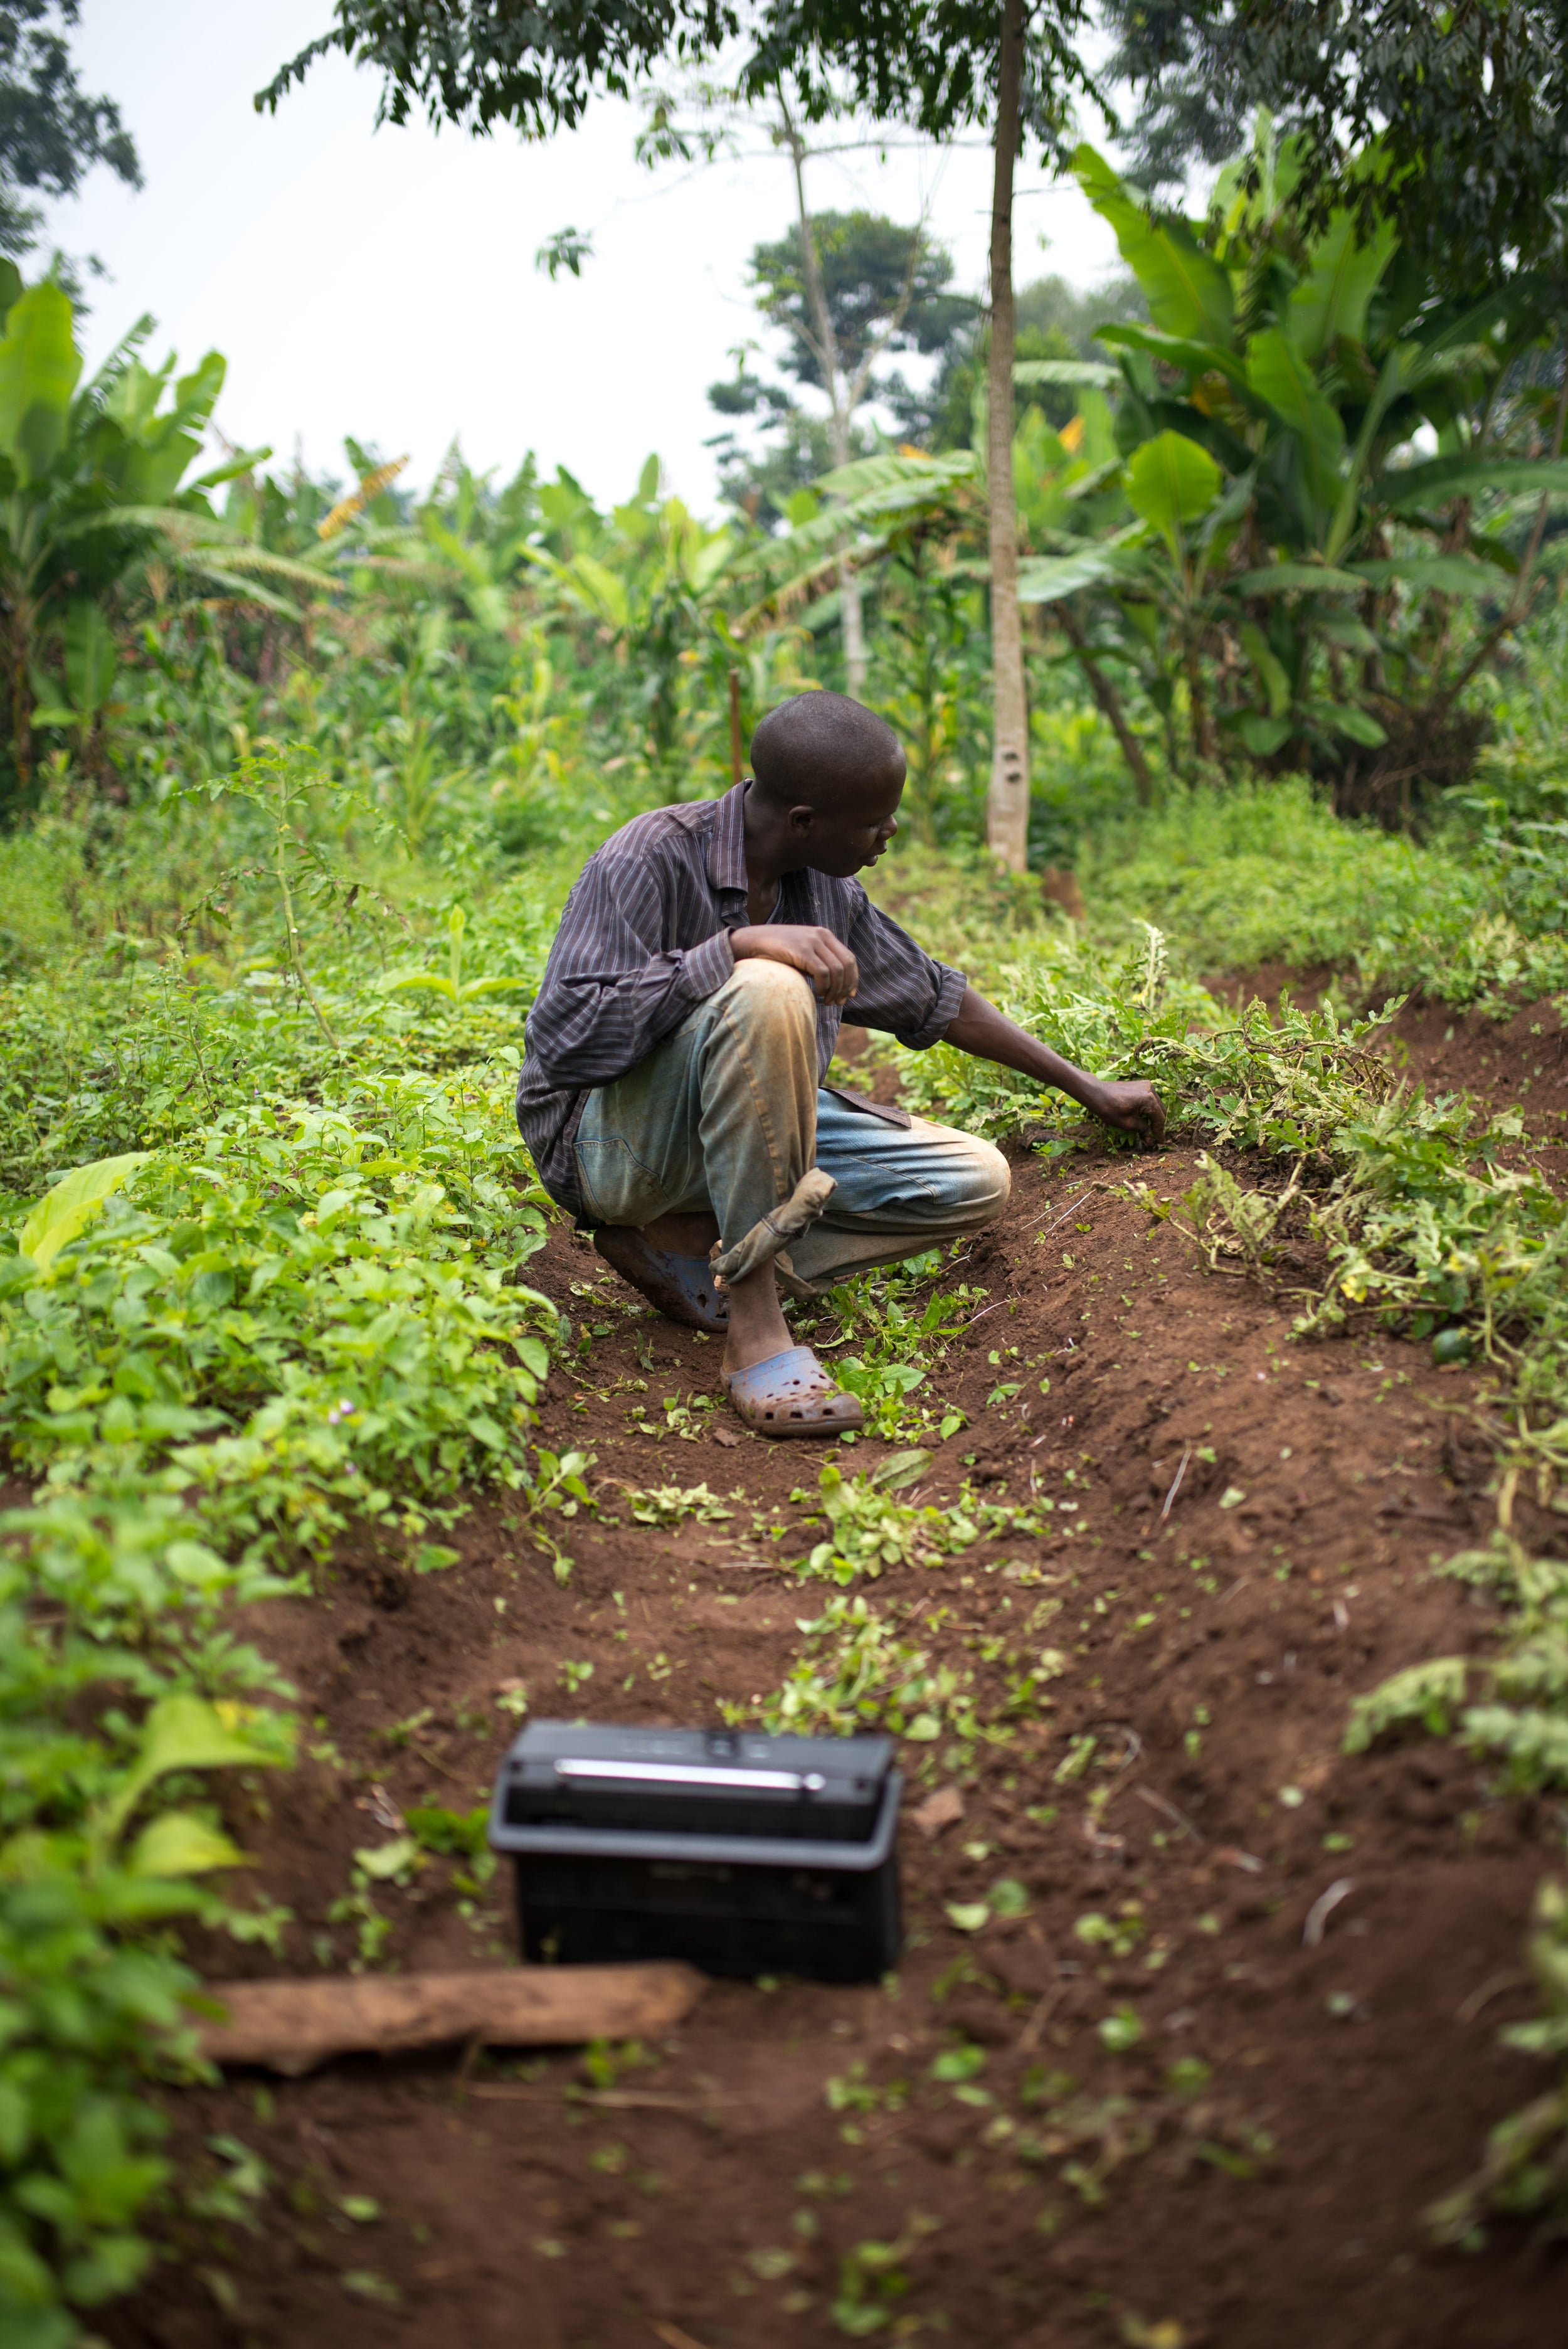 Our land in Uganda is quite fertile, but it still takes a lot of work to produce.